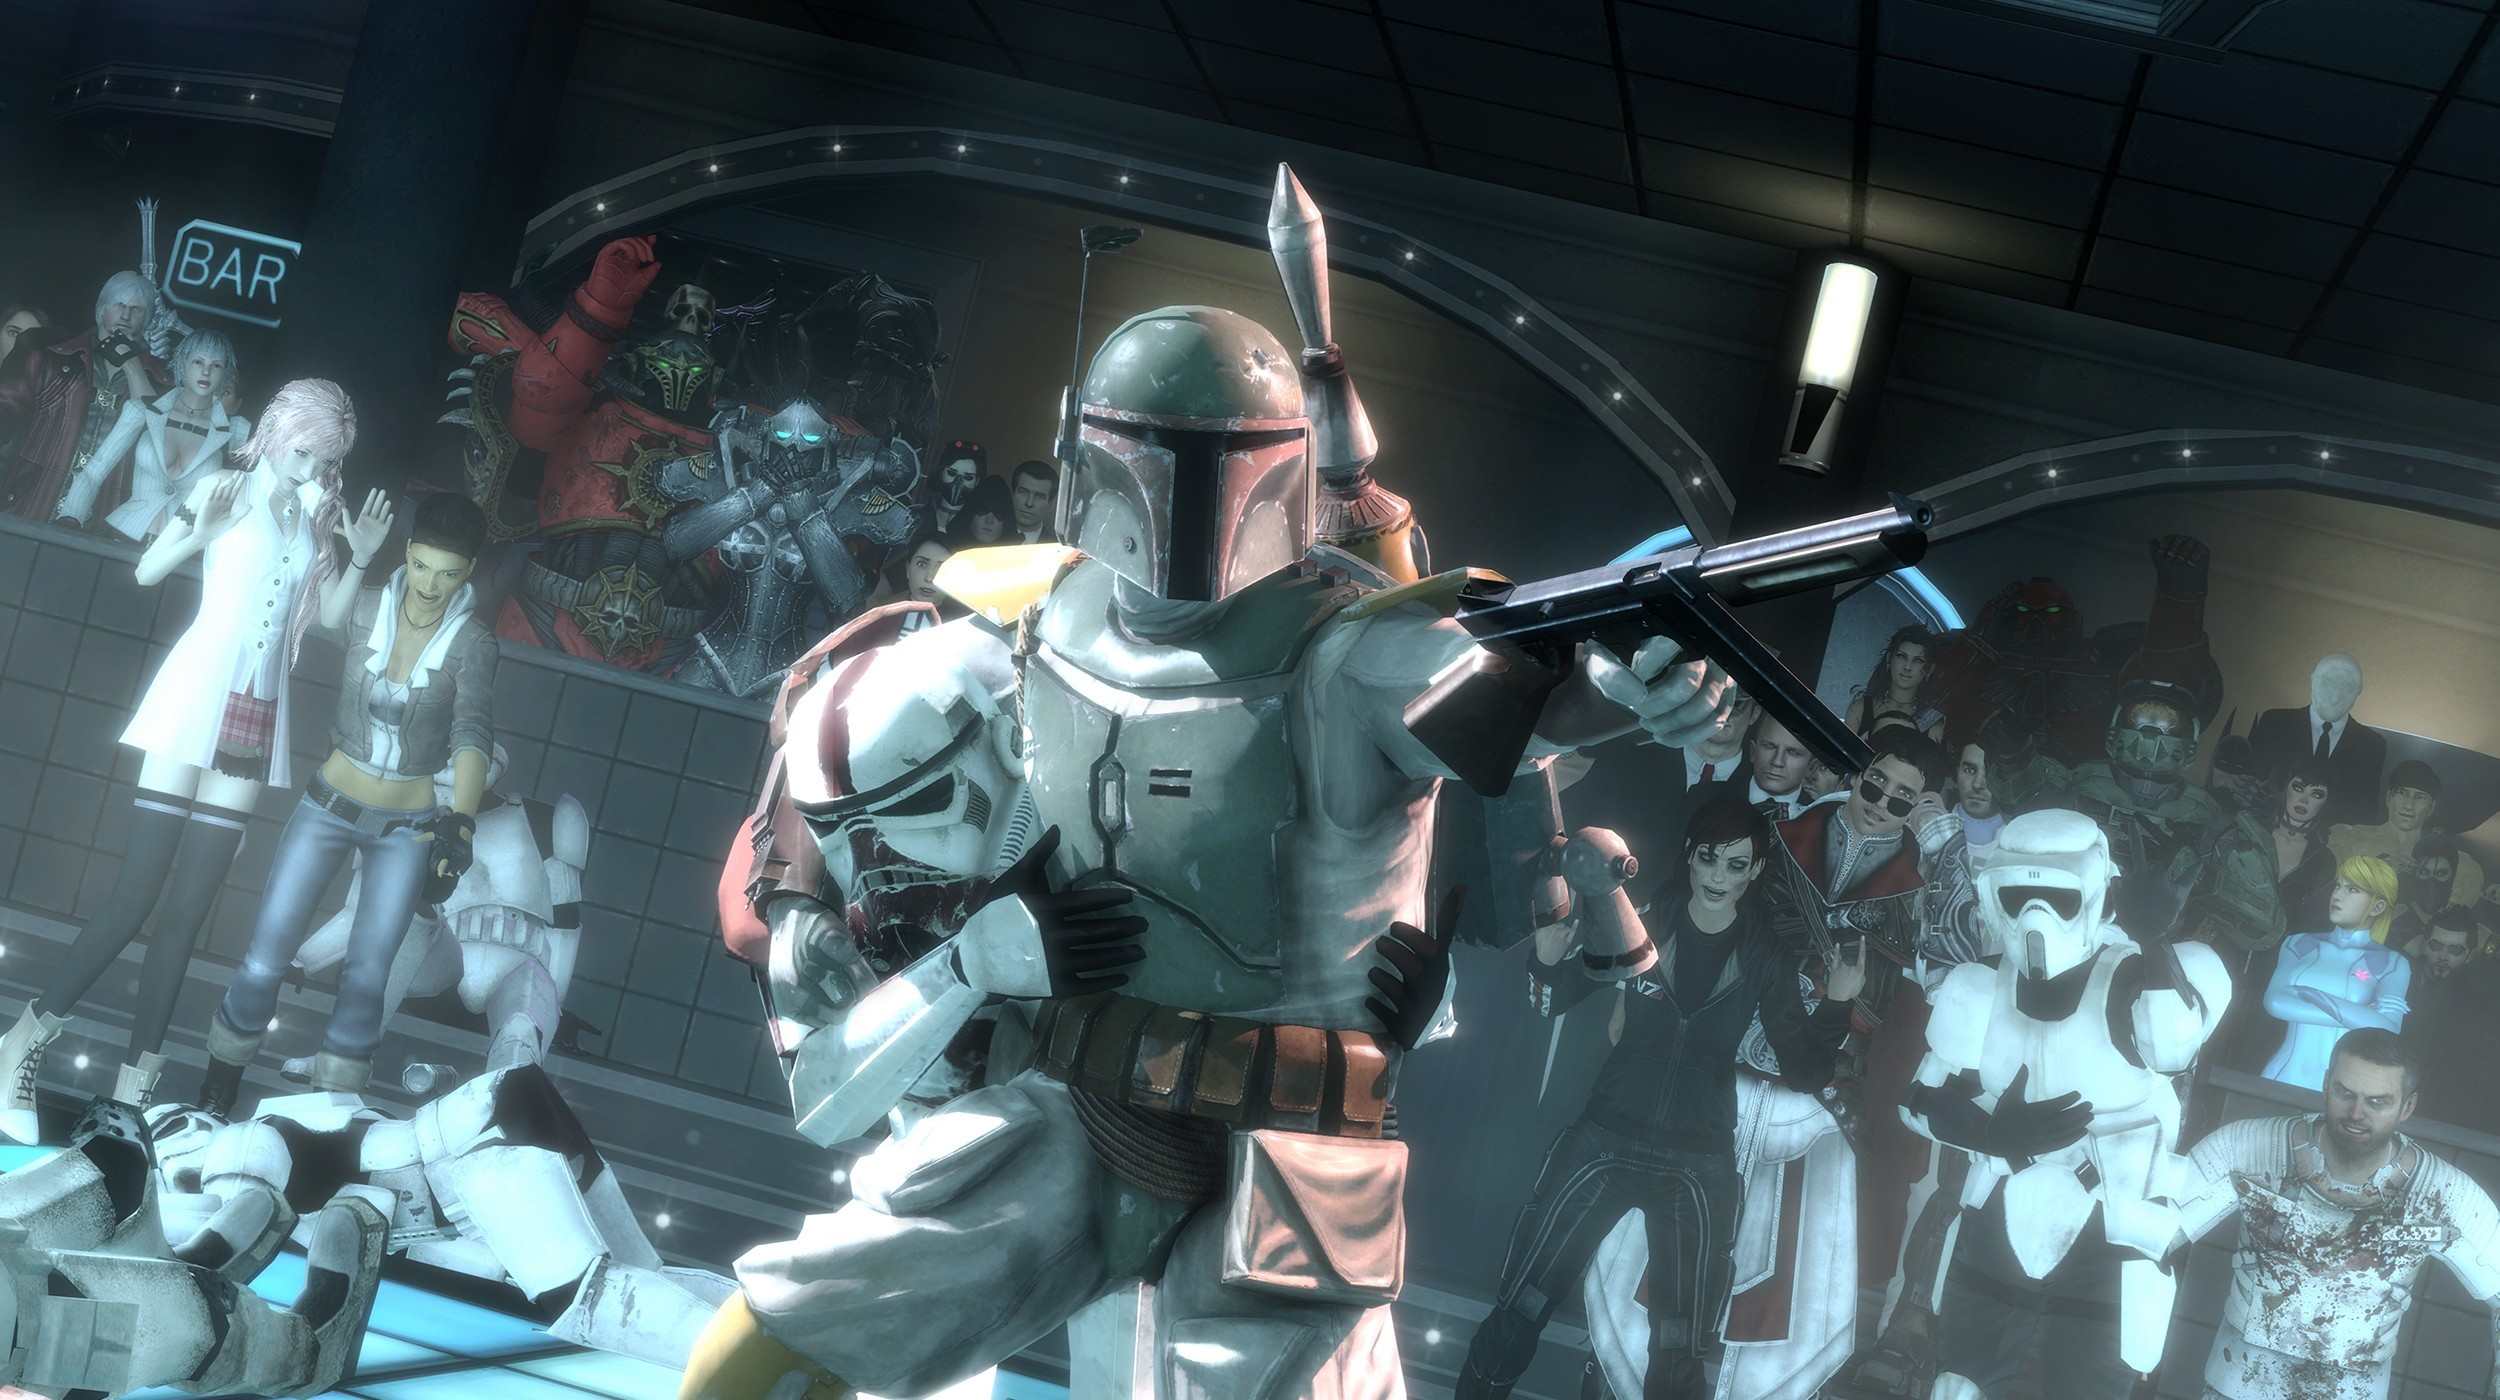 Boba Fett Star Wars Halo Devil May Cry Dante Warcraft Stormtroopers